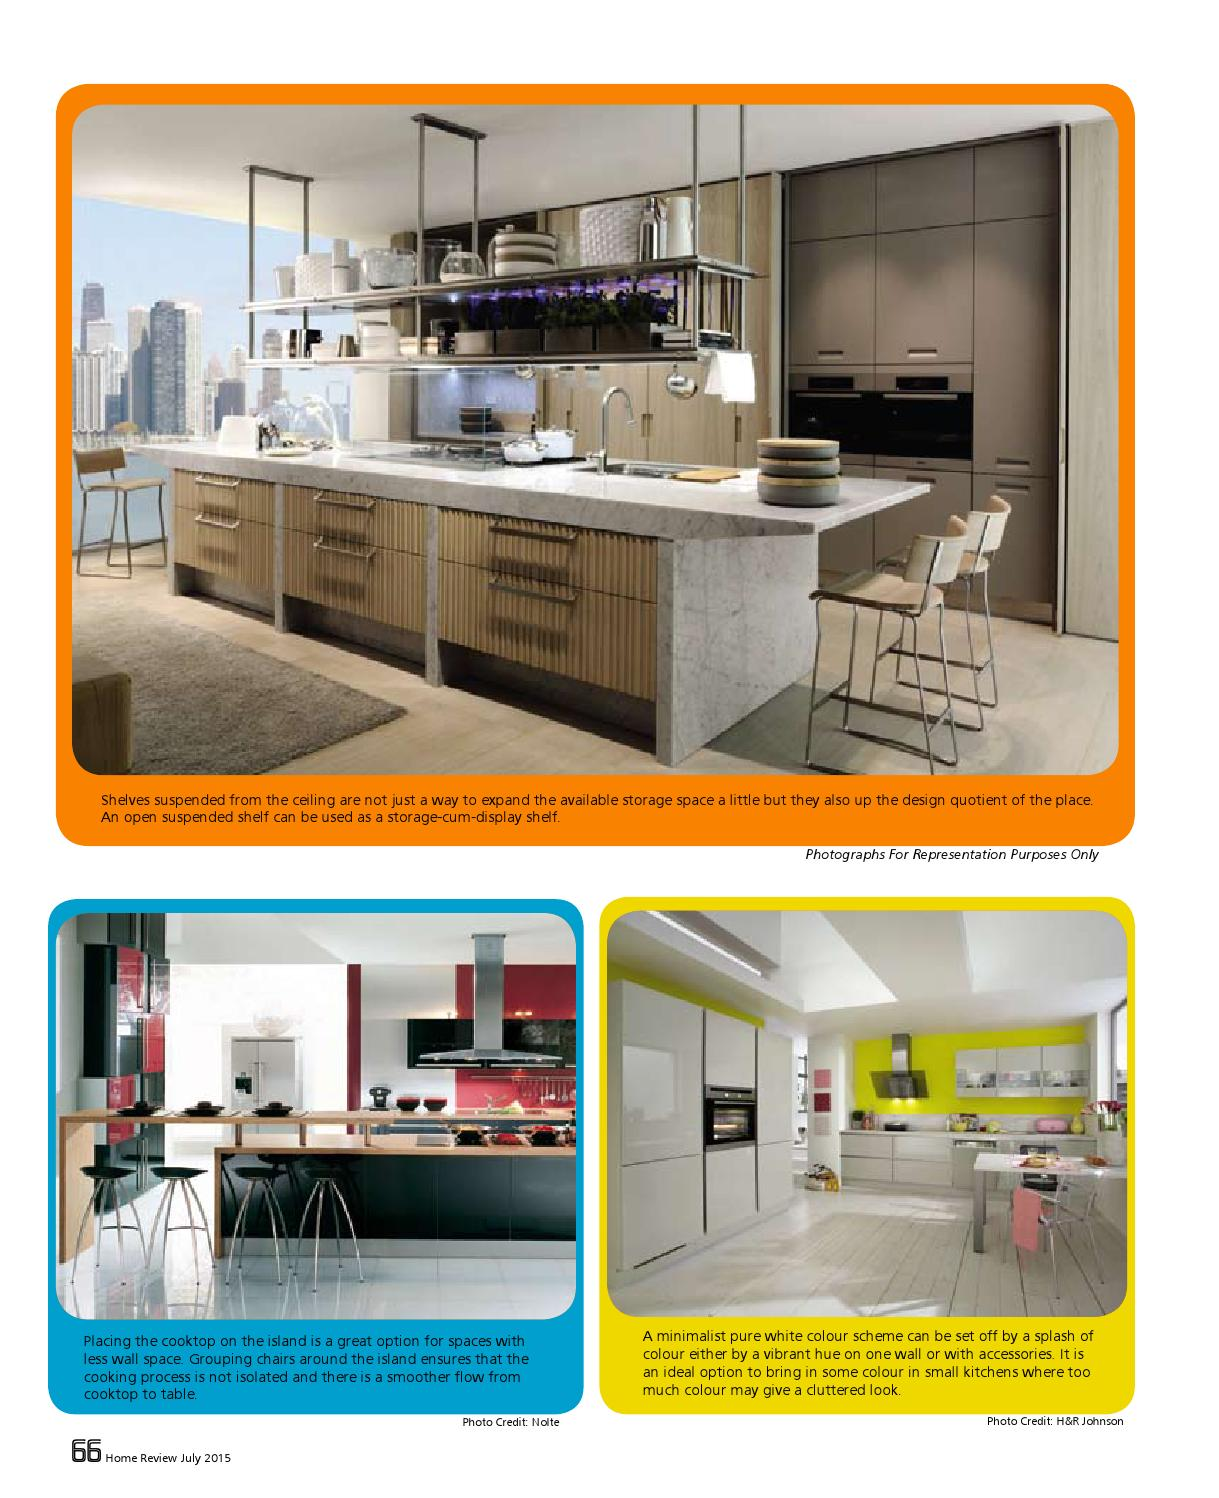 Home Review July 2015 by Home Review - issuu